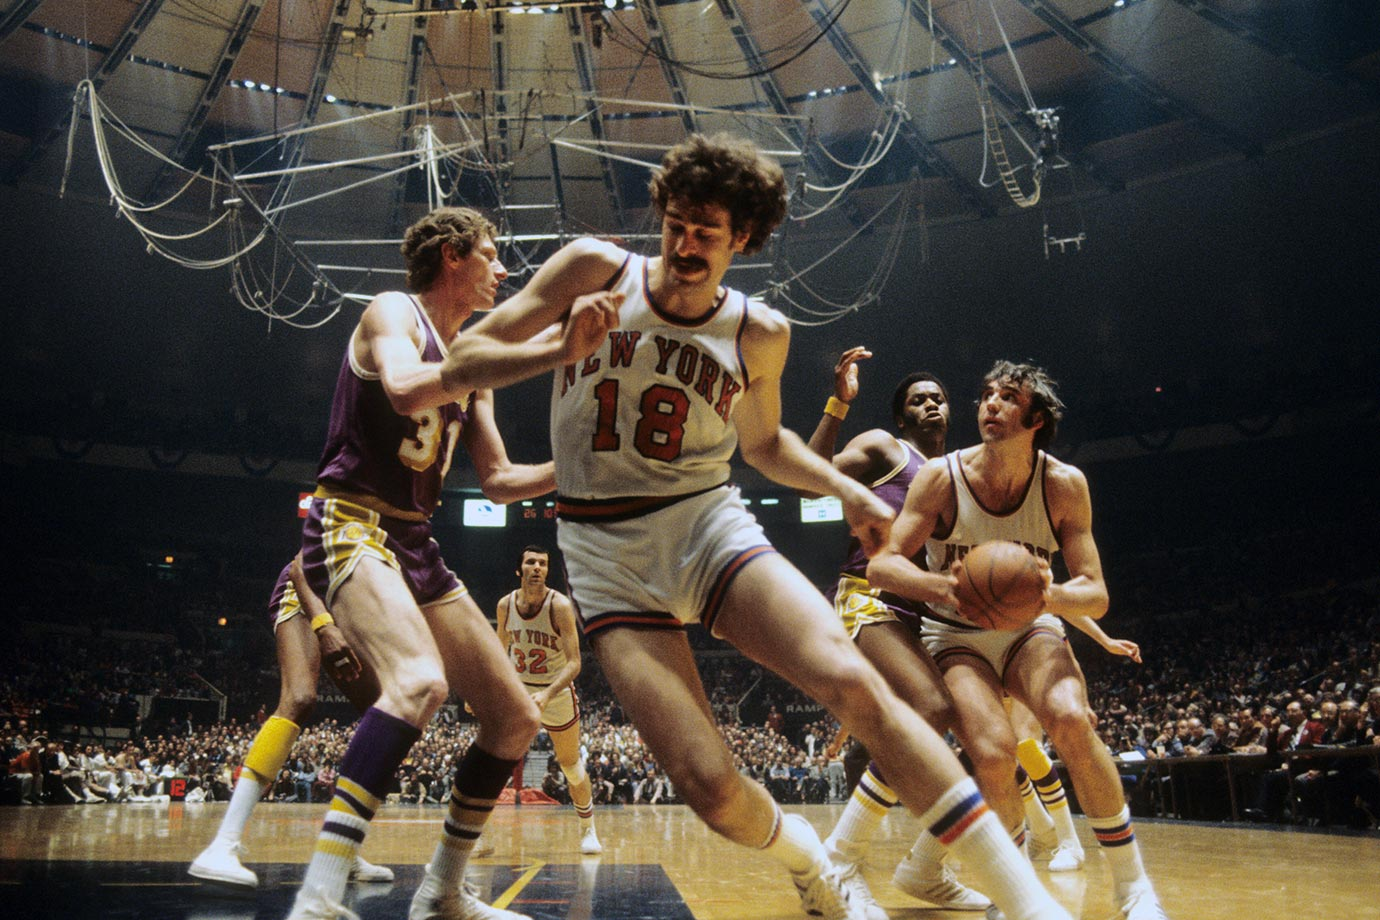 May 6, 1973 — NBA Finals, Game 3